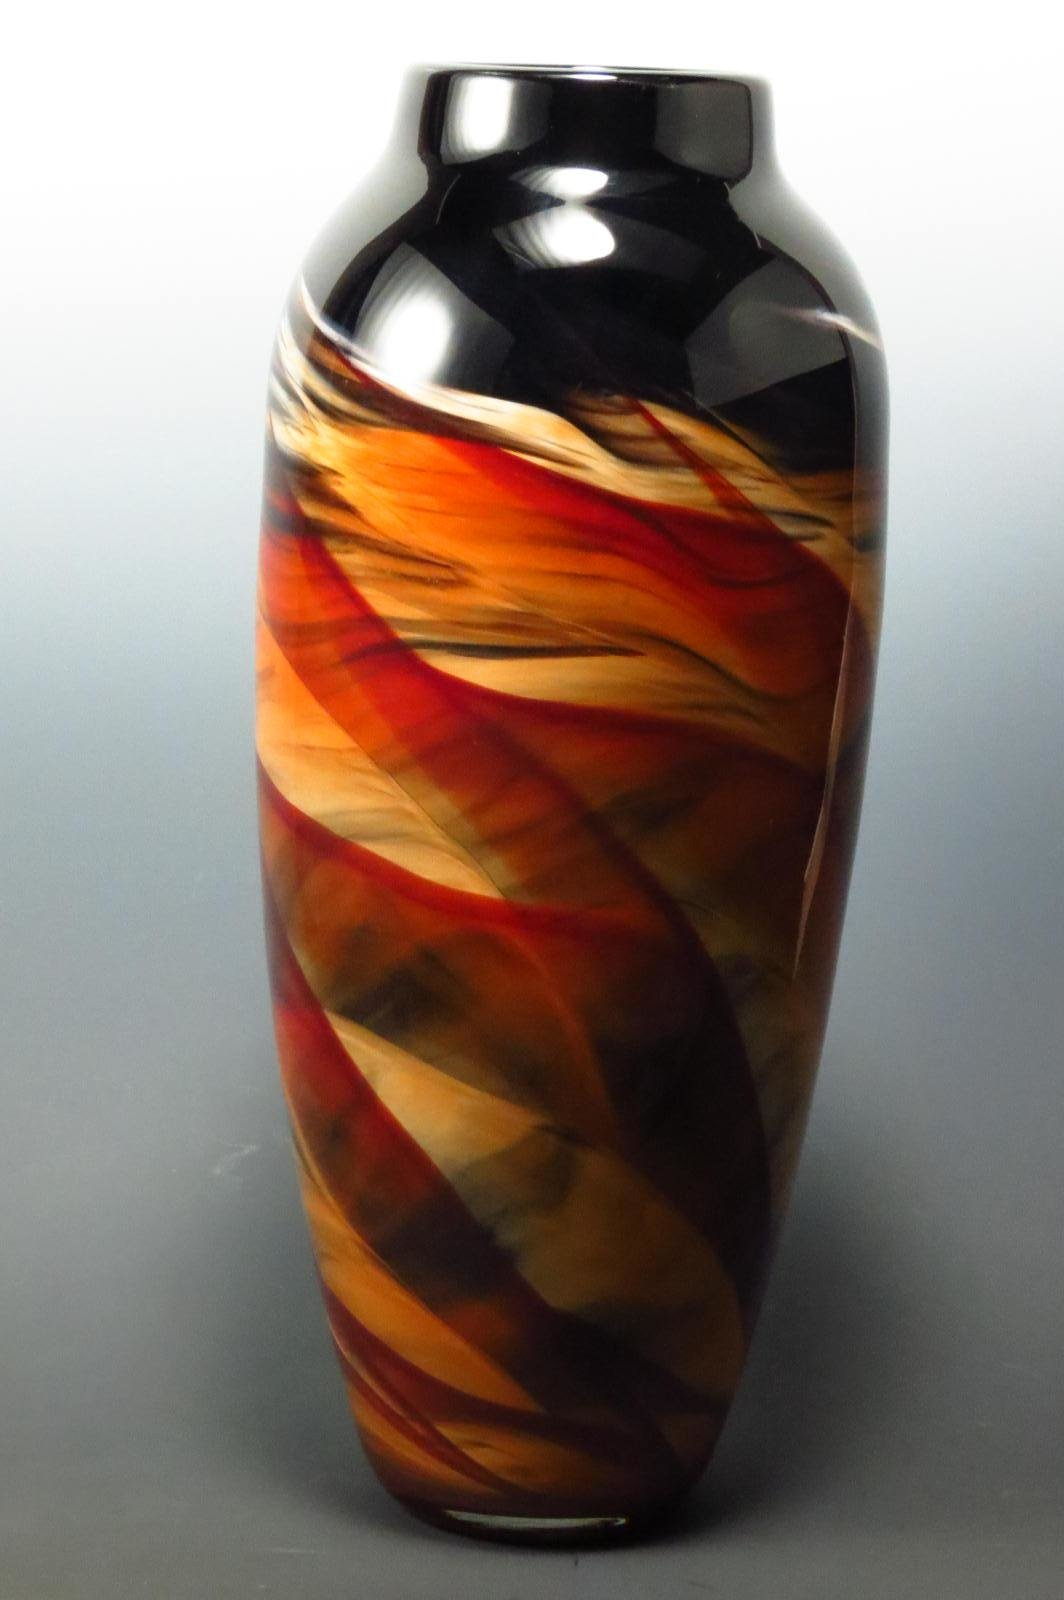 Red Amp Black Dreamscape Vase By Mark Rosenbaum Art Glass